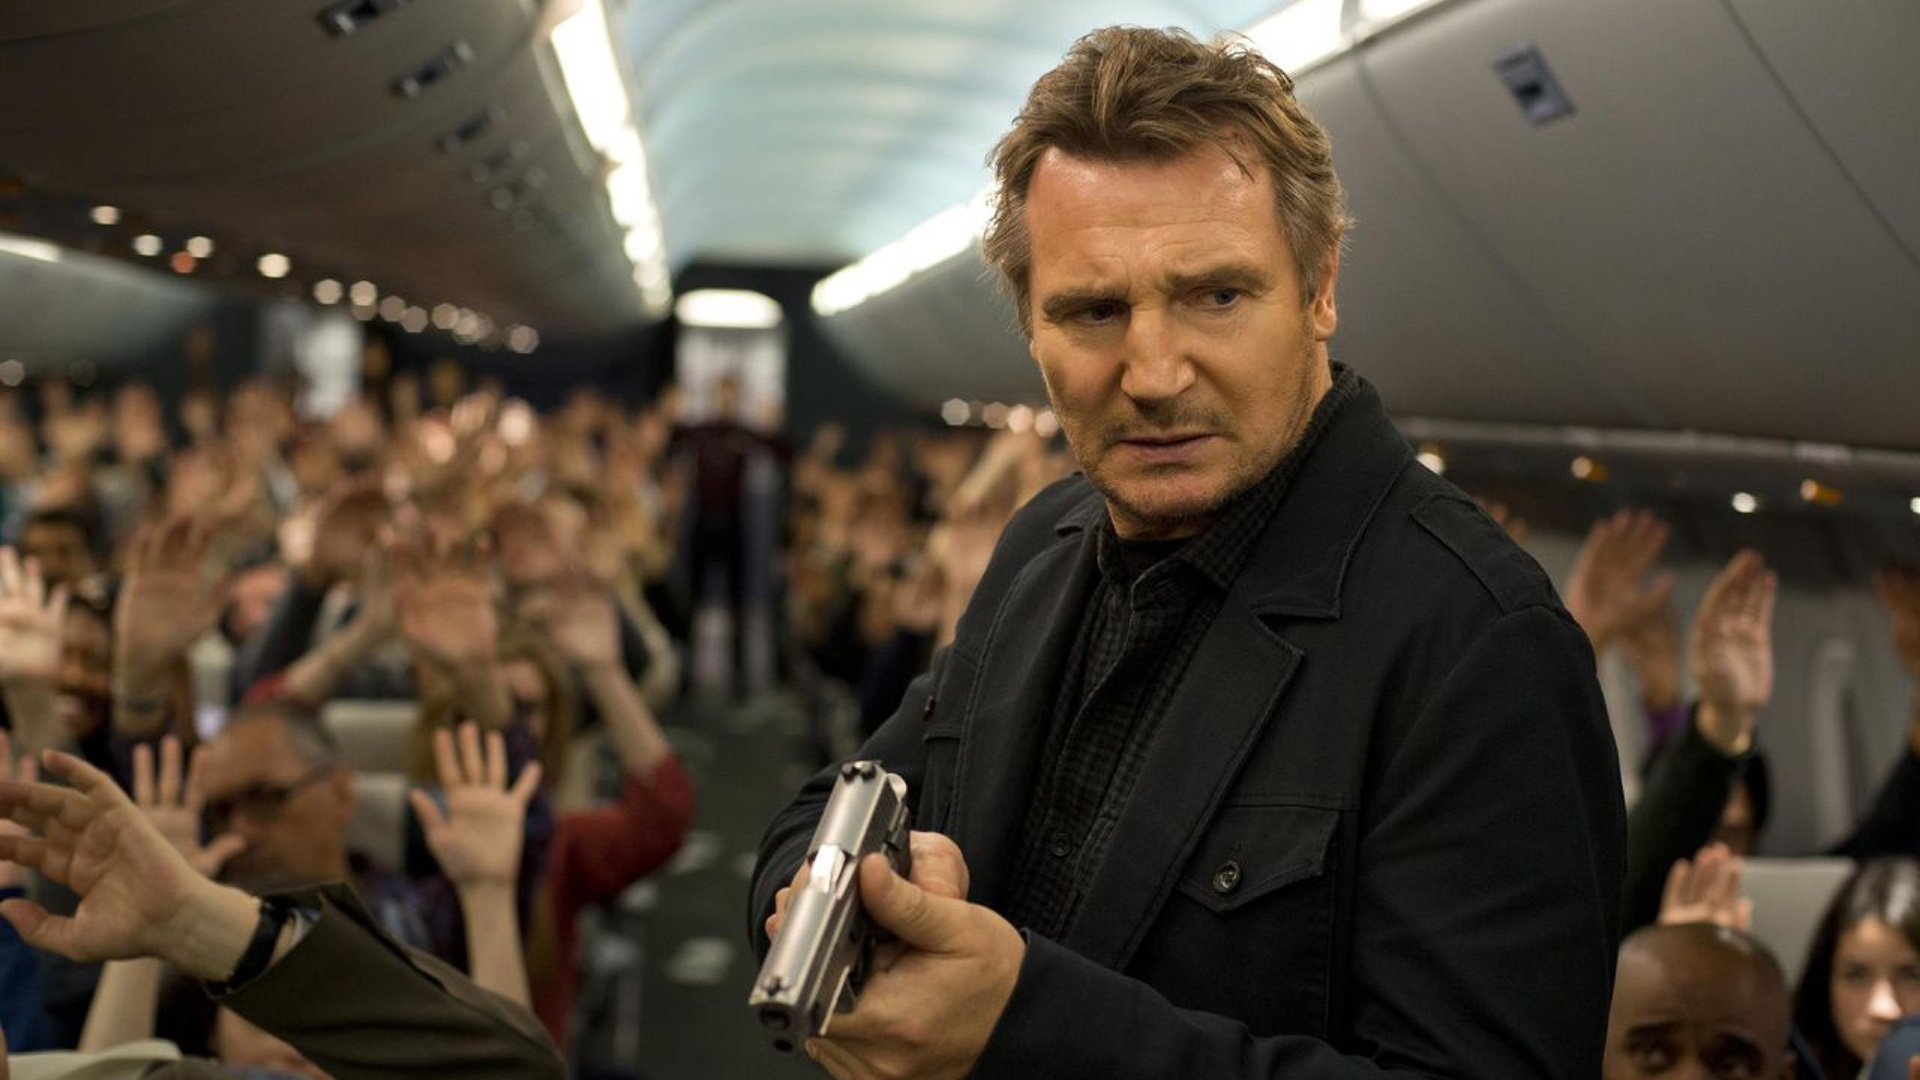 Liam Neeson Will Star in Another New Action Thriller Called